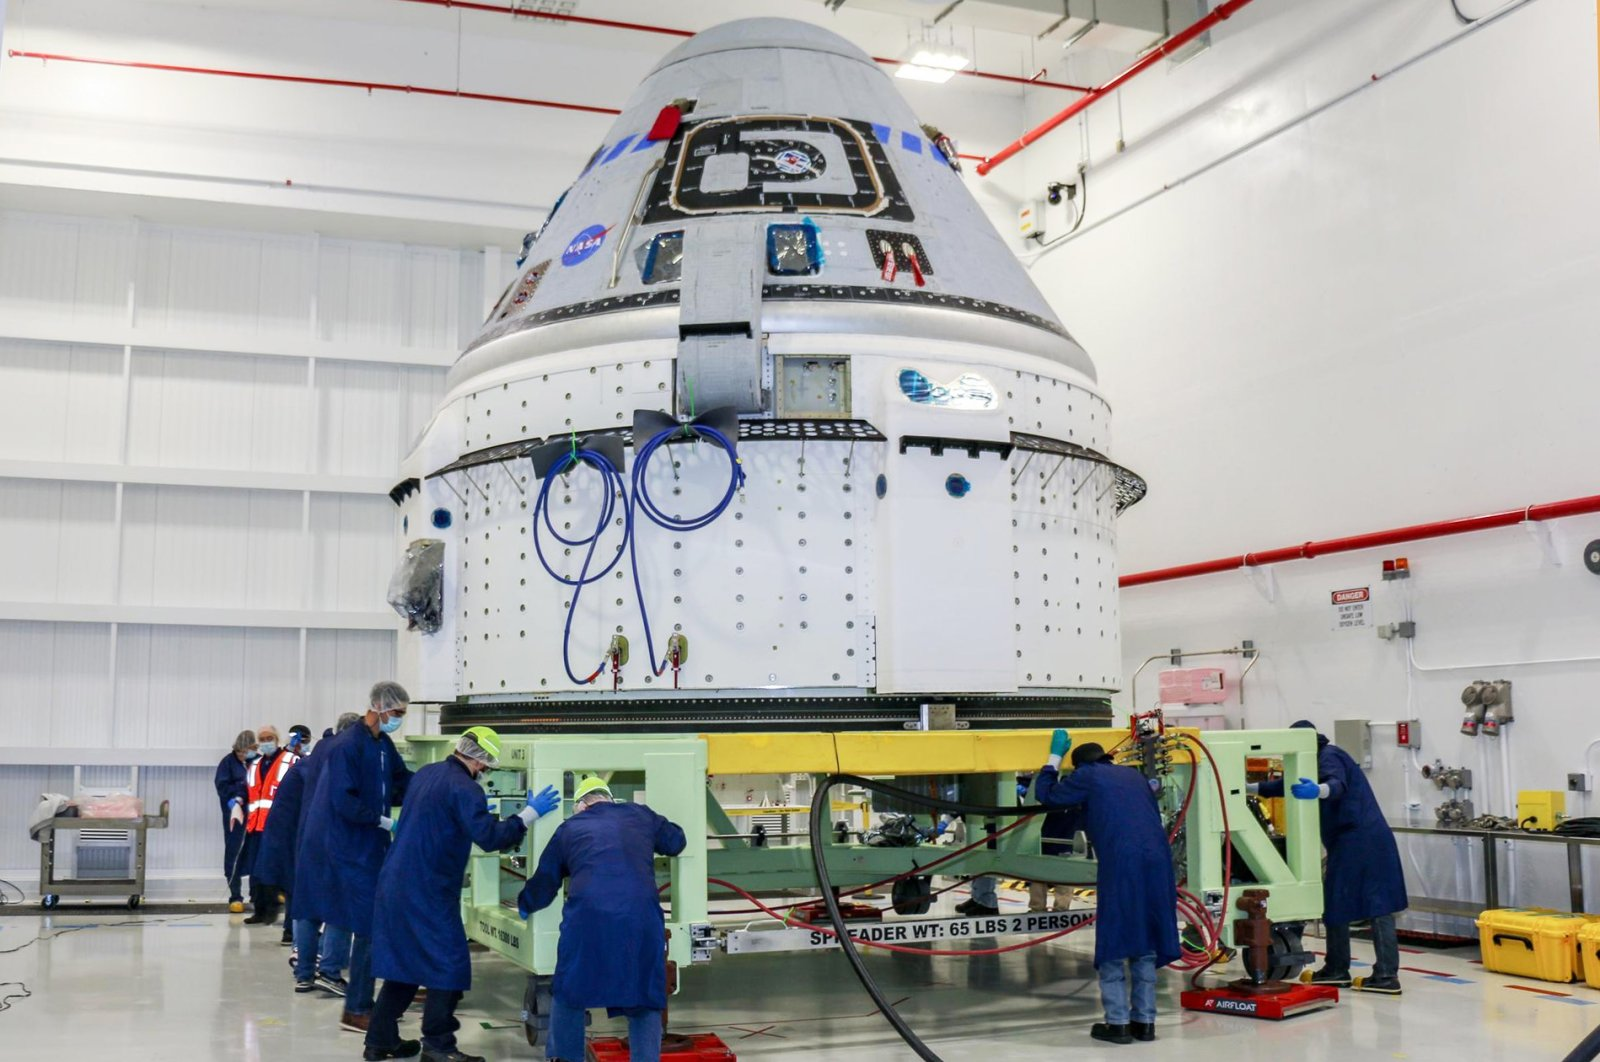 Technicians prepare Boeing's CST-100 Starliner for the company's Orbital Flight Test-2 (OFT-2) in the Commercial Crew and Cargo Processing Facility at NASA's Kennedy Space Center in Florida, U.S., June 2, 2021. (NASA via AP)